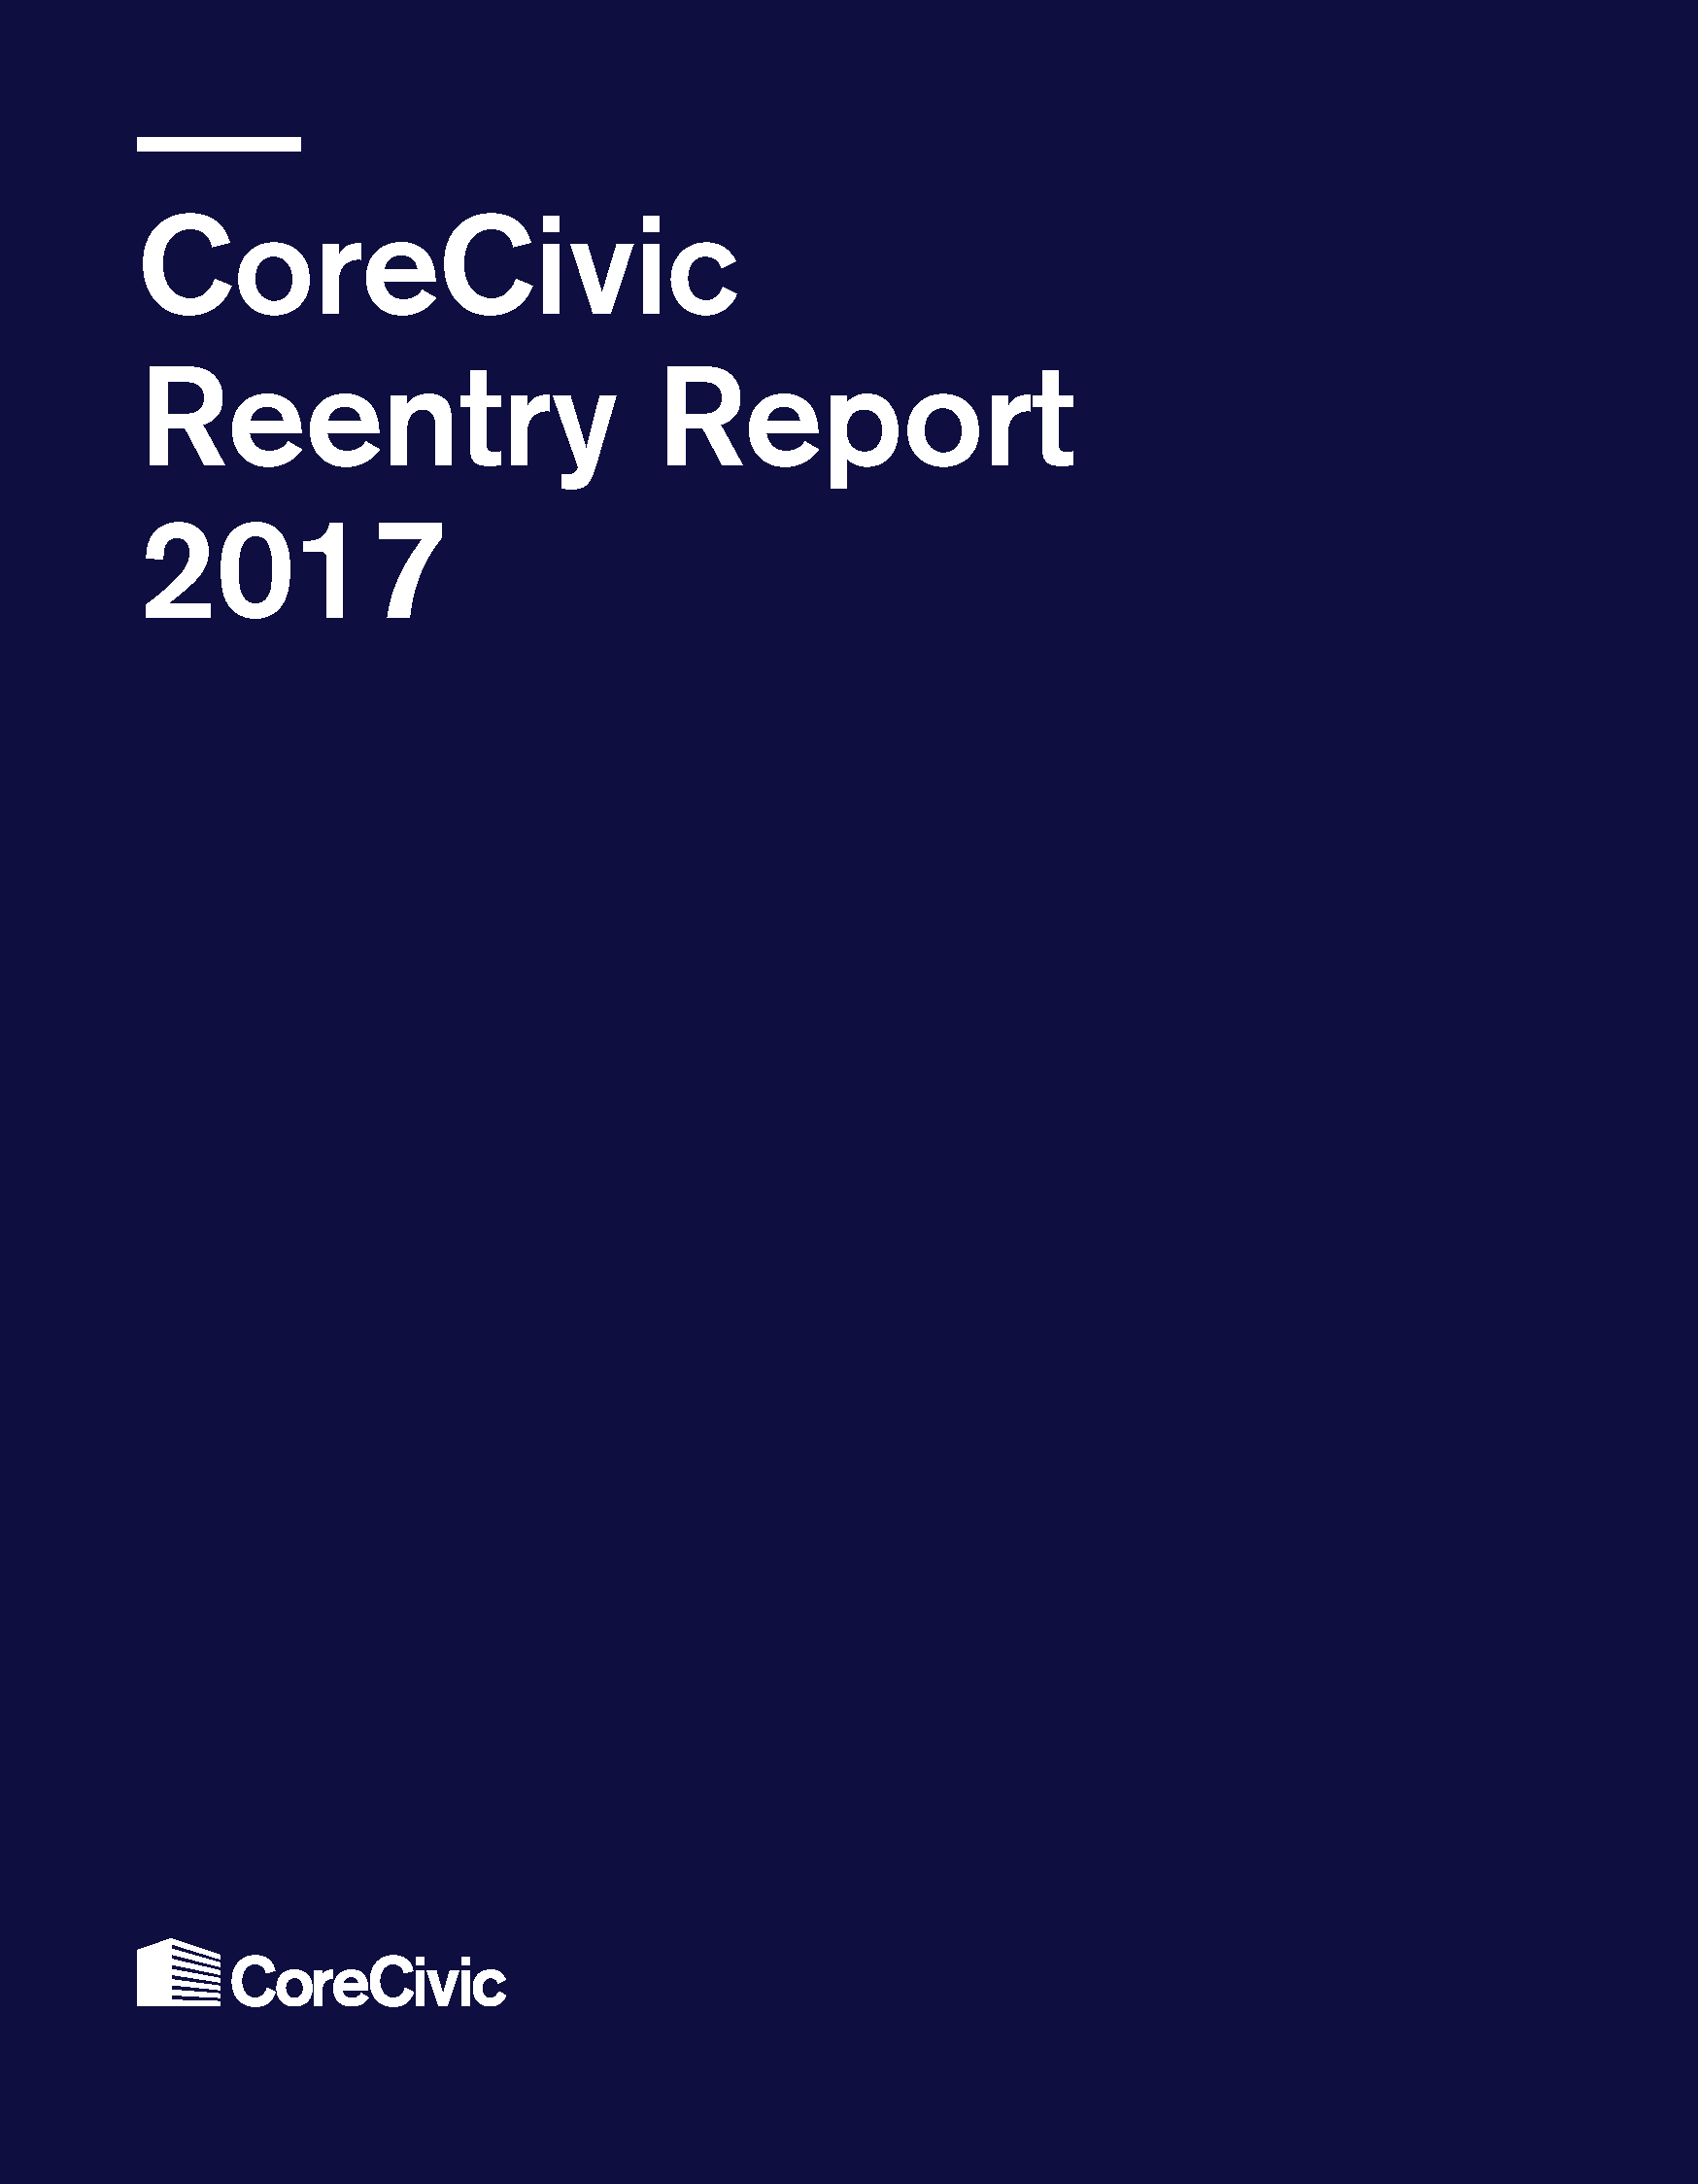 CoreCivic_ReentryReport_COVER_3.8.18